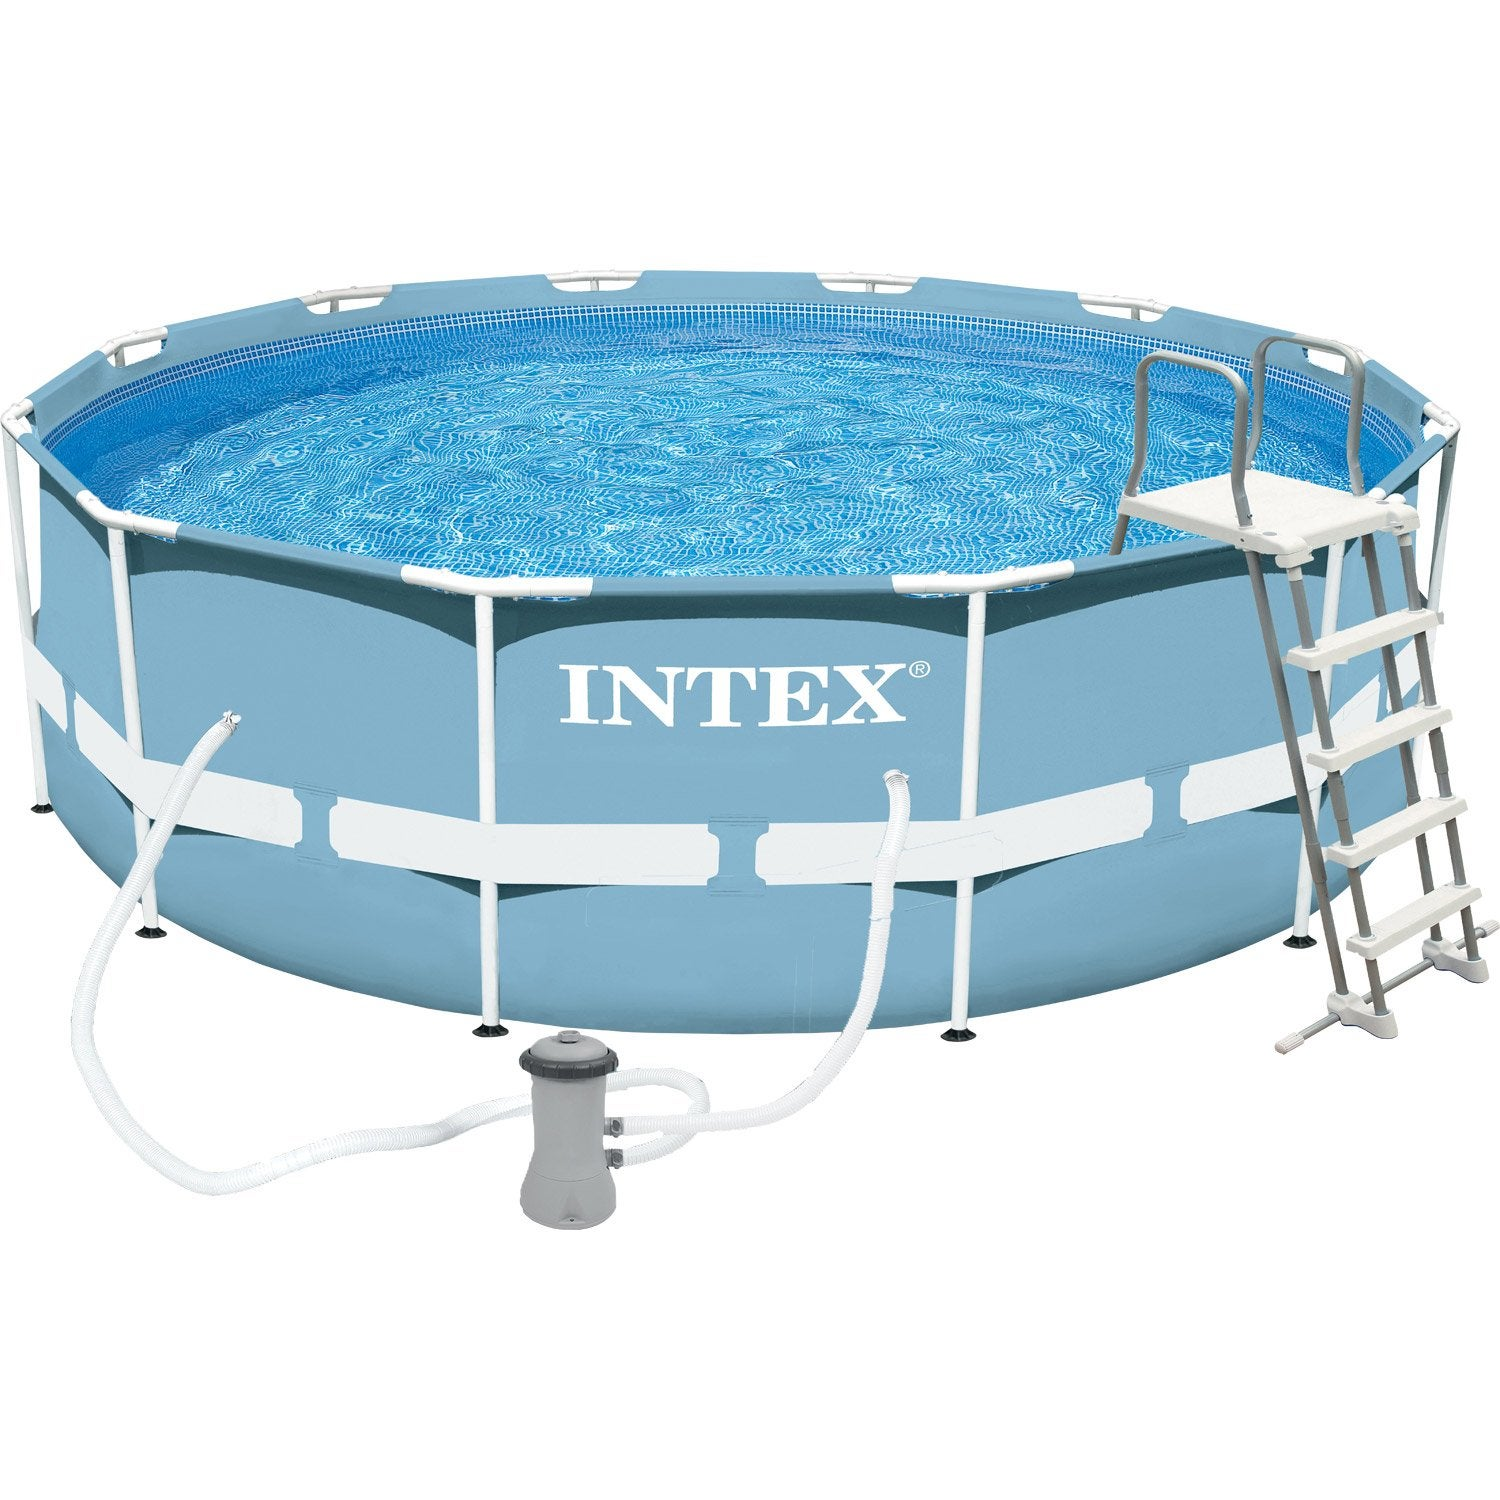 Piscine hors sol autoportante tubulaire prism frame intex for Piscine hors sol dimension